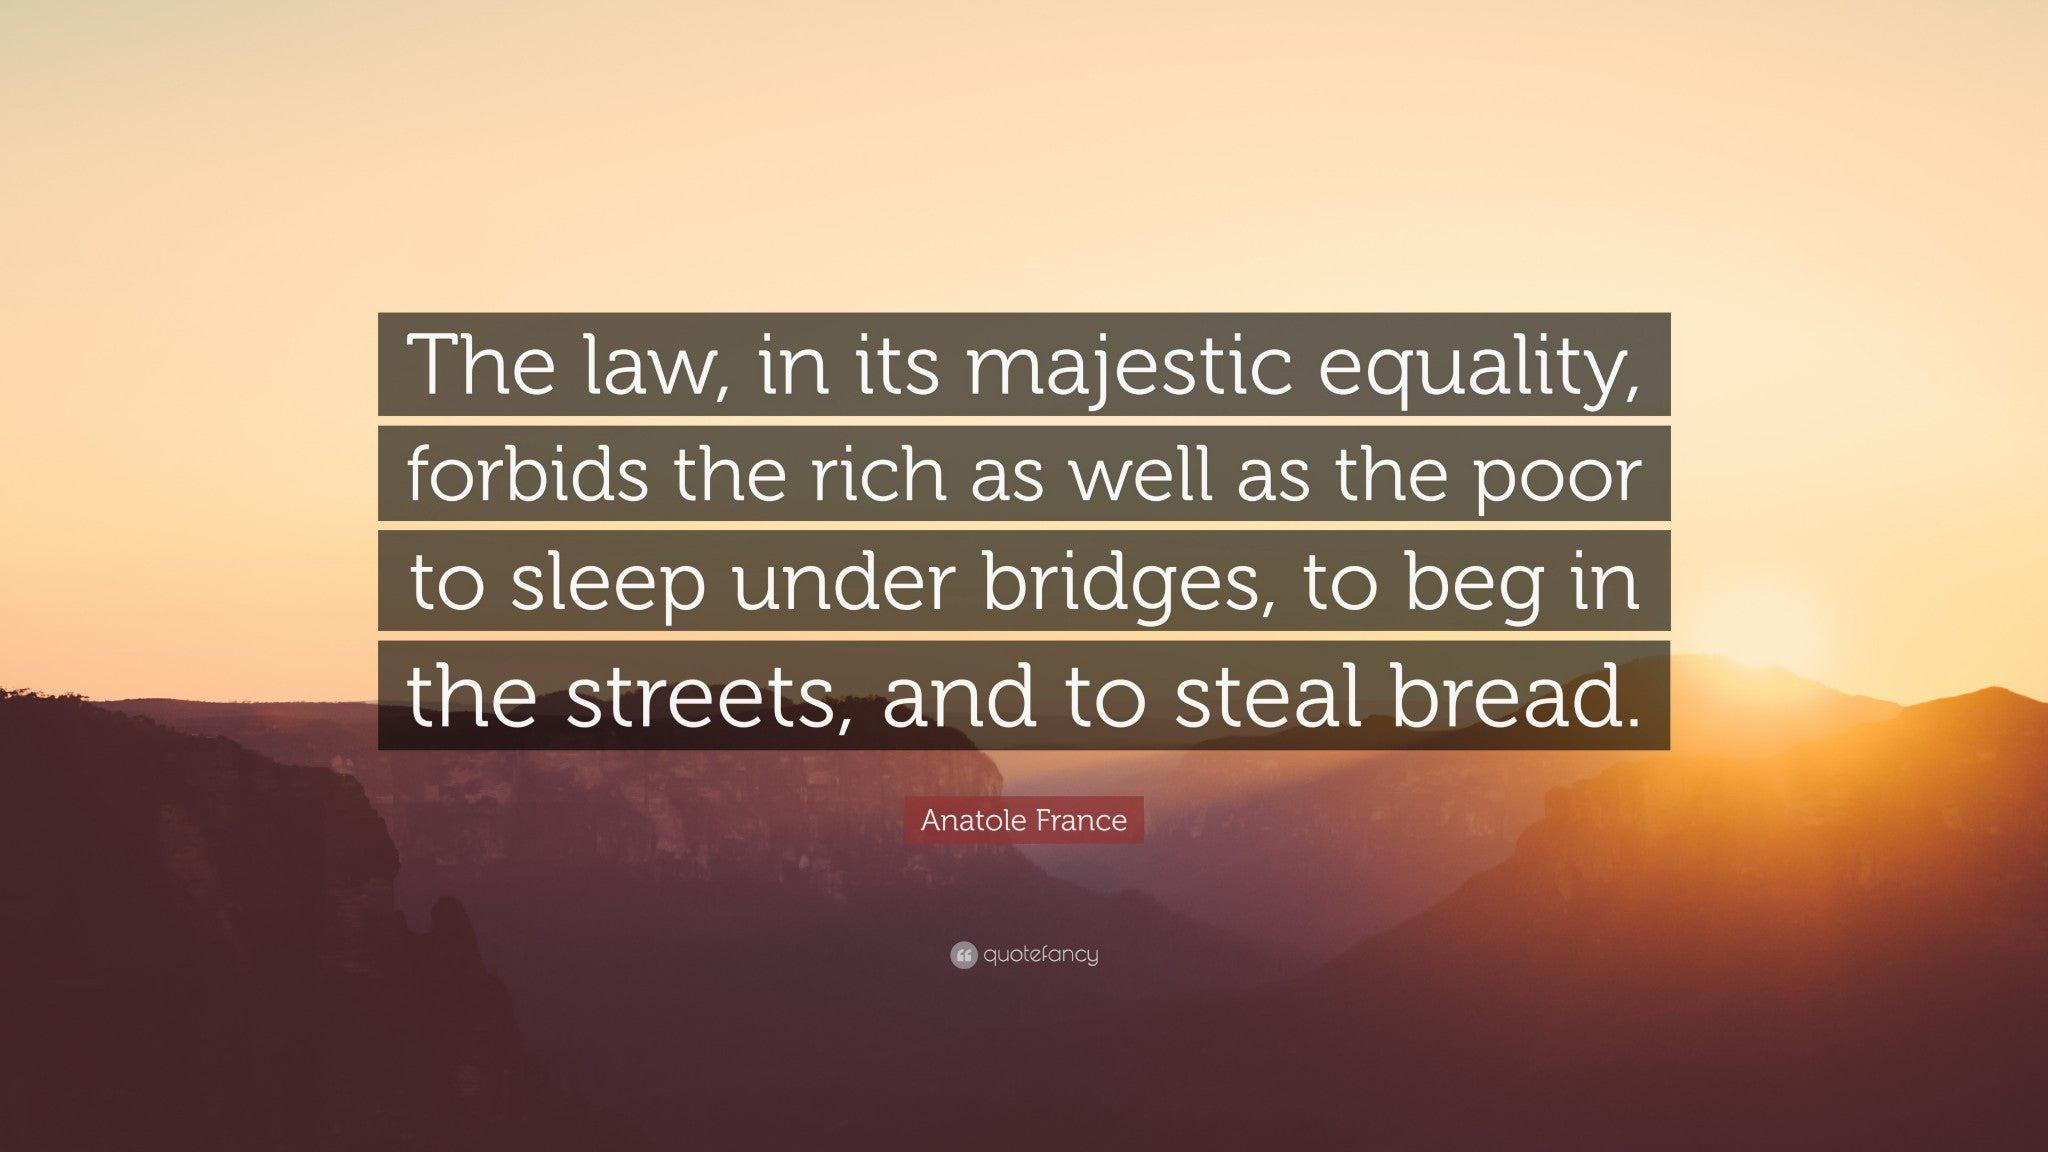 """The law, in its majestic equality, forbids the rich as well as the poor to sleep under bridges, to beg in the streets, and to steal bread."" – Anatole France [3109 x 1748]"